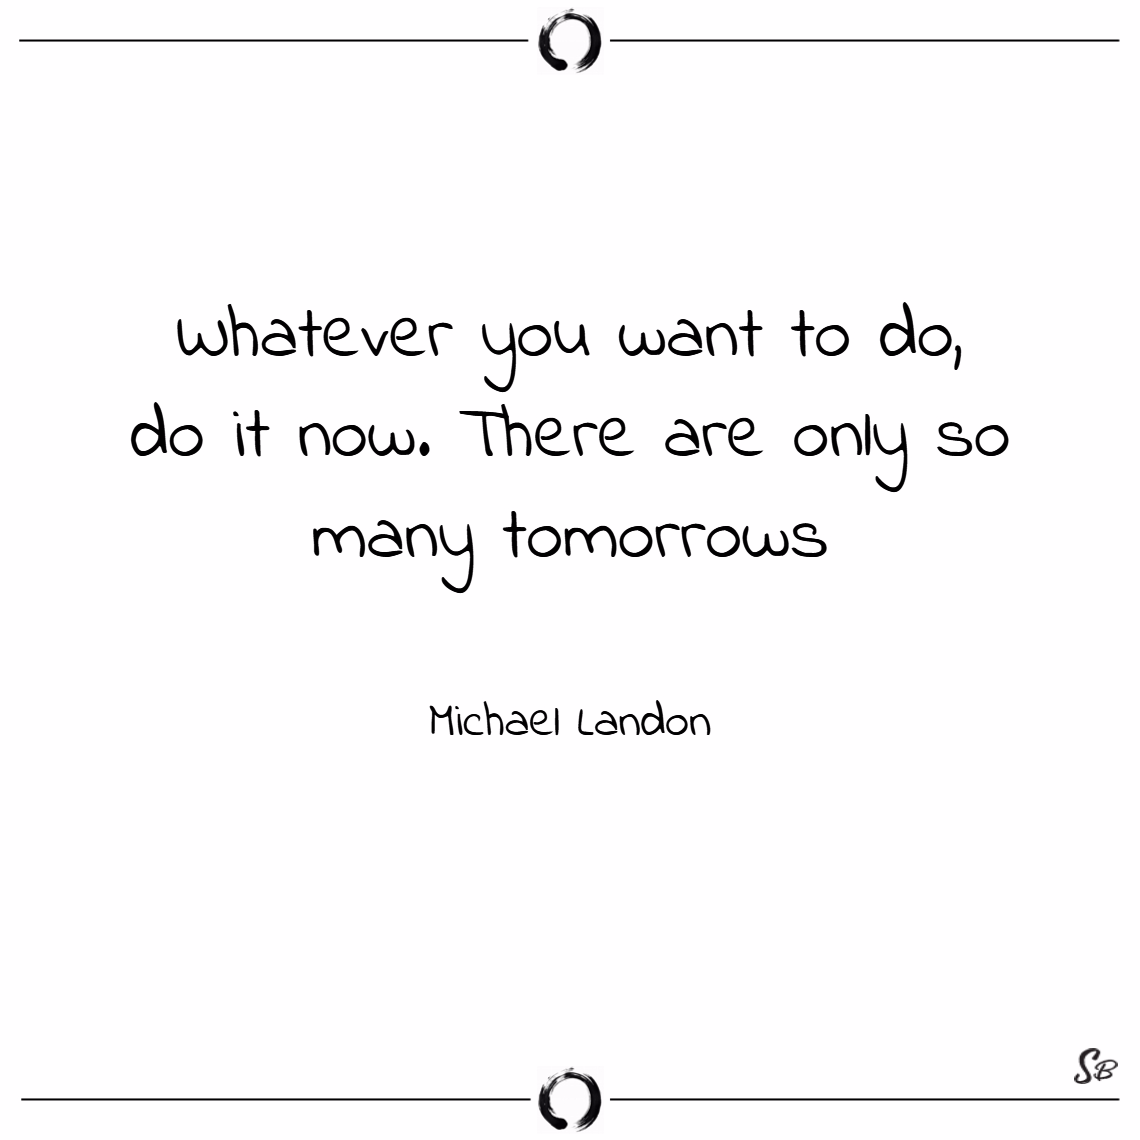 Whatever you want to do, do it now. there are only so many tomorrows. – michael landon